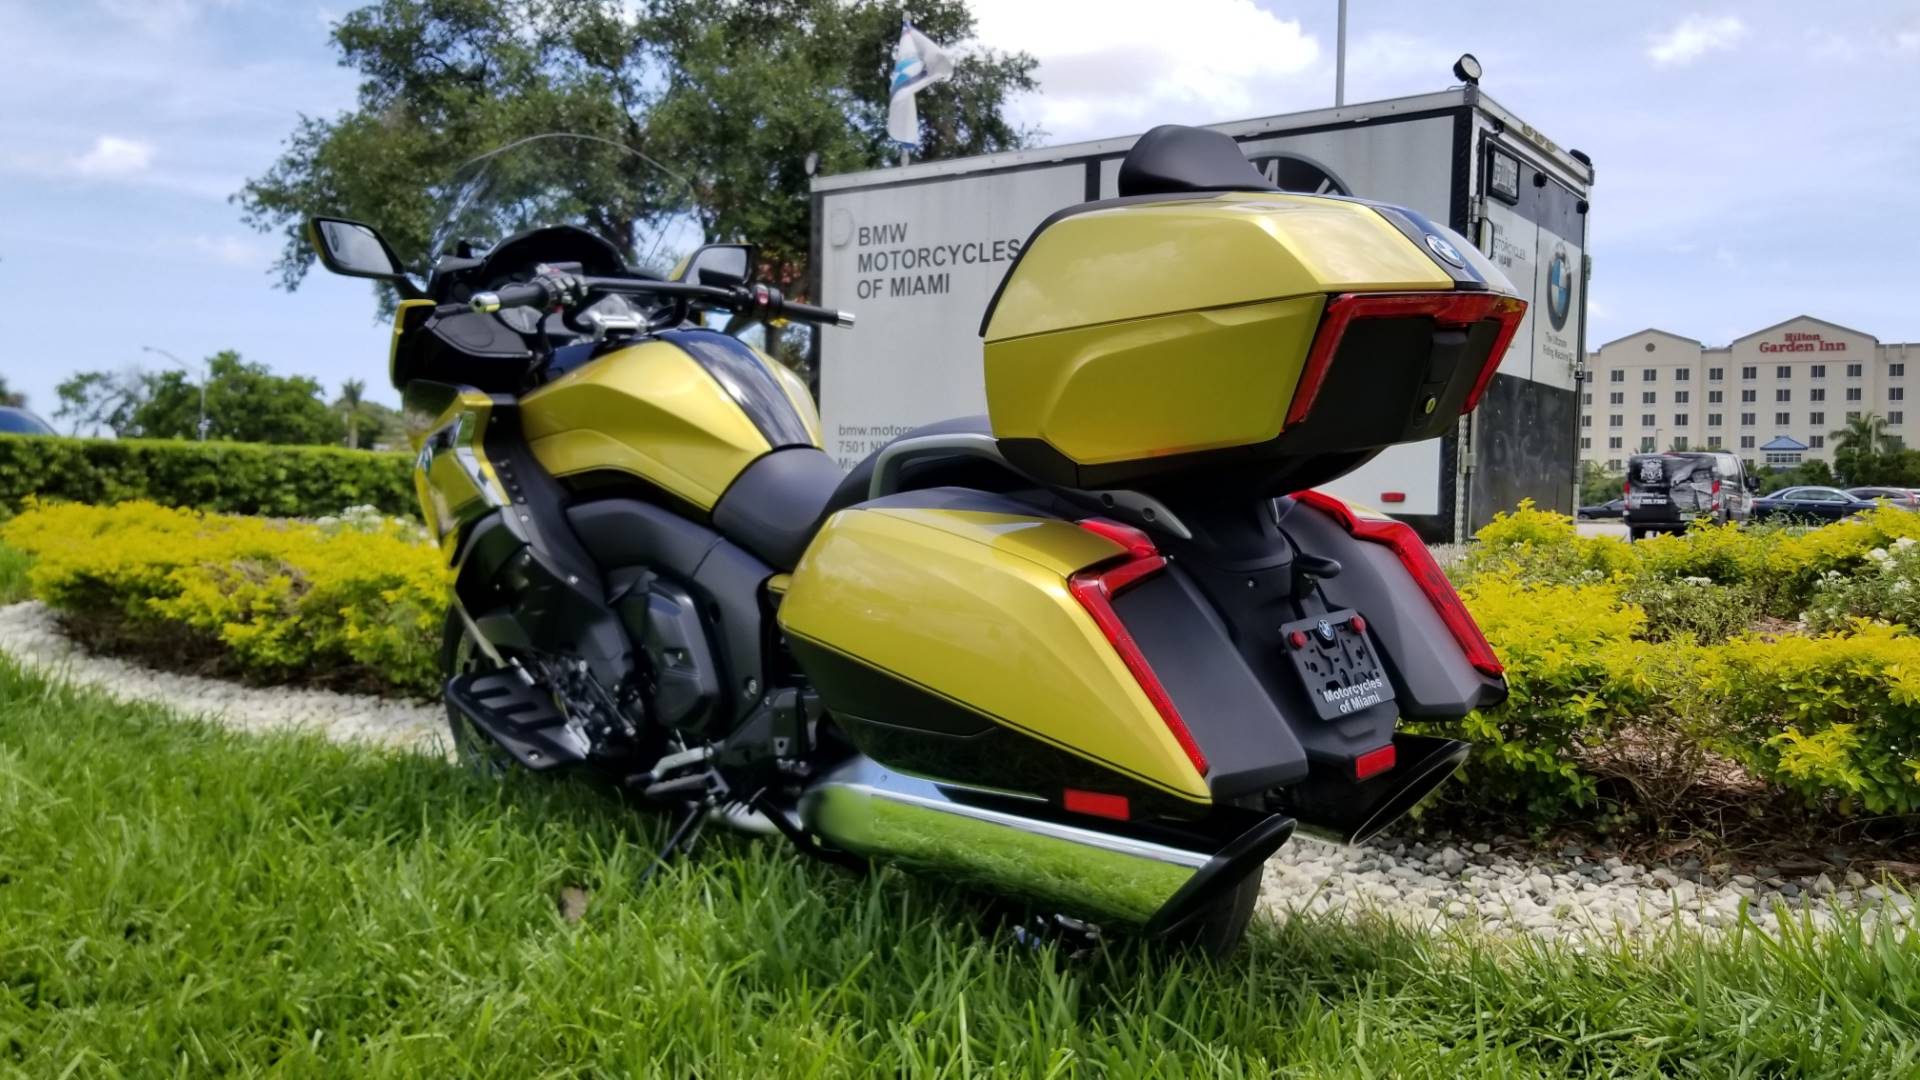 New 2018 BMW K 1600 B For Sale, BMW K 1600B For Sale, BMW Motorcycle K1600B, new BMW Bagger, Bagger Grand America, Gran America.